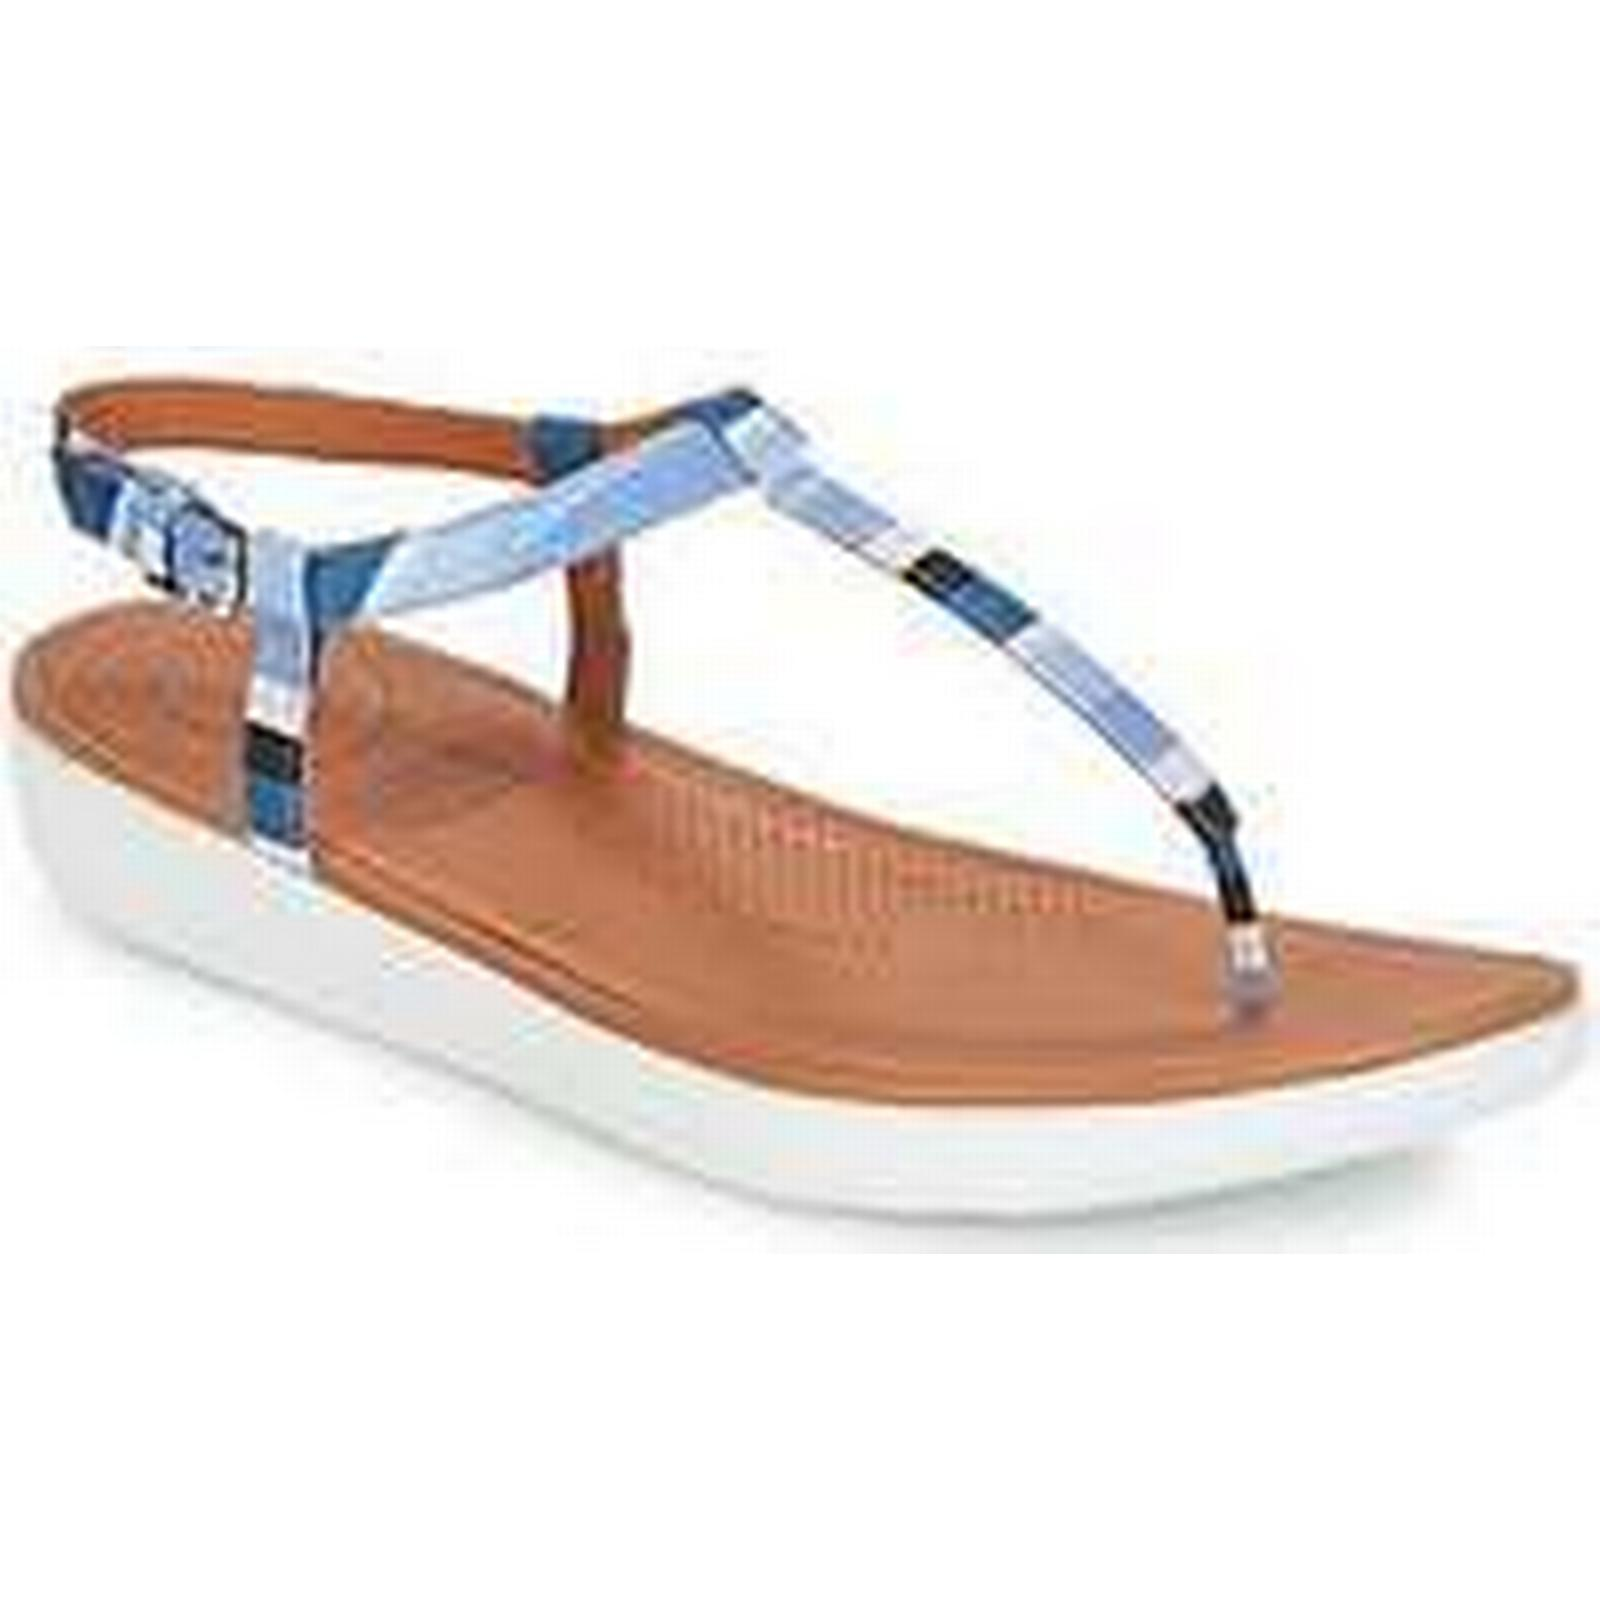 Spartoo.co.uk Sandals FitFlop TIA TOE-THONG women's Sandals Spartoo.co.uk in Blue aacb2c